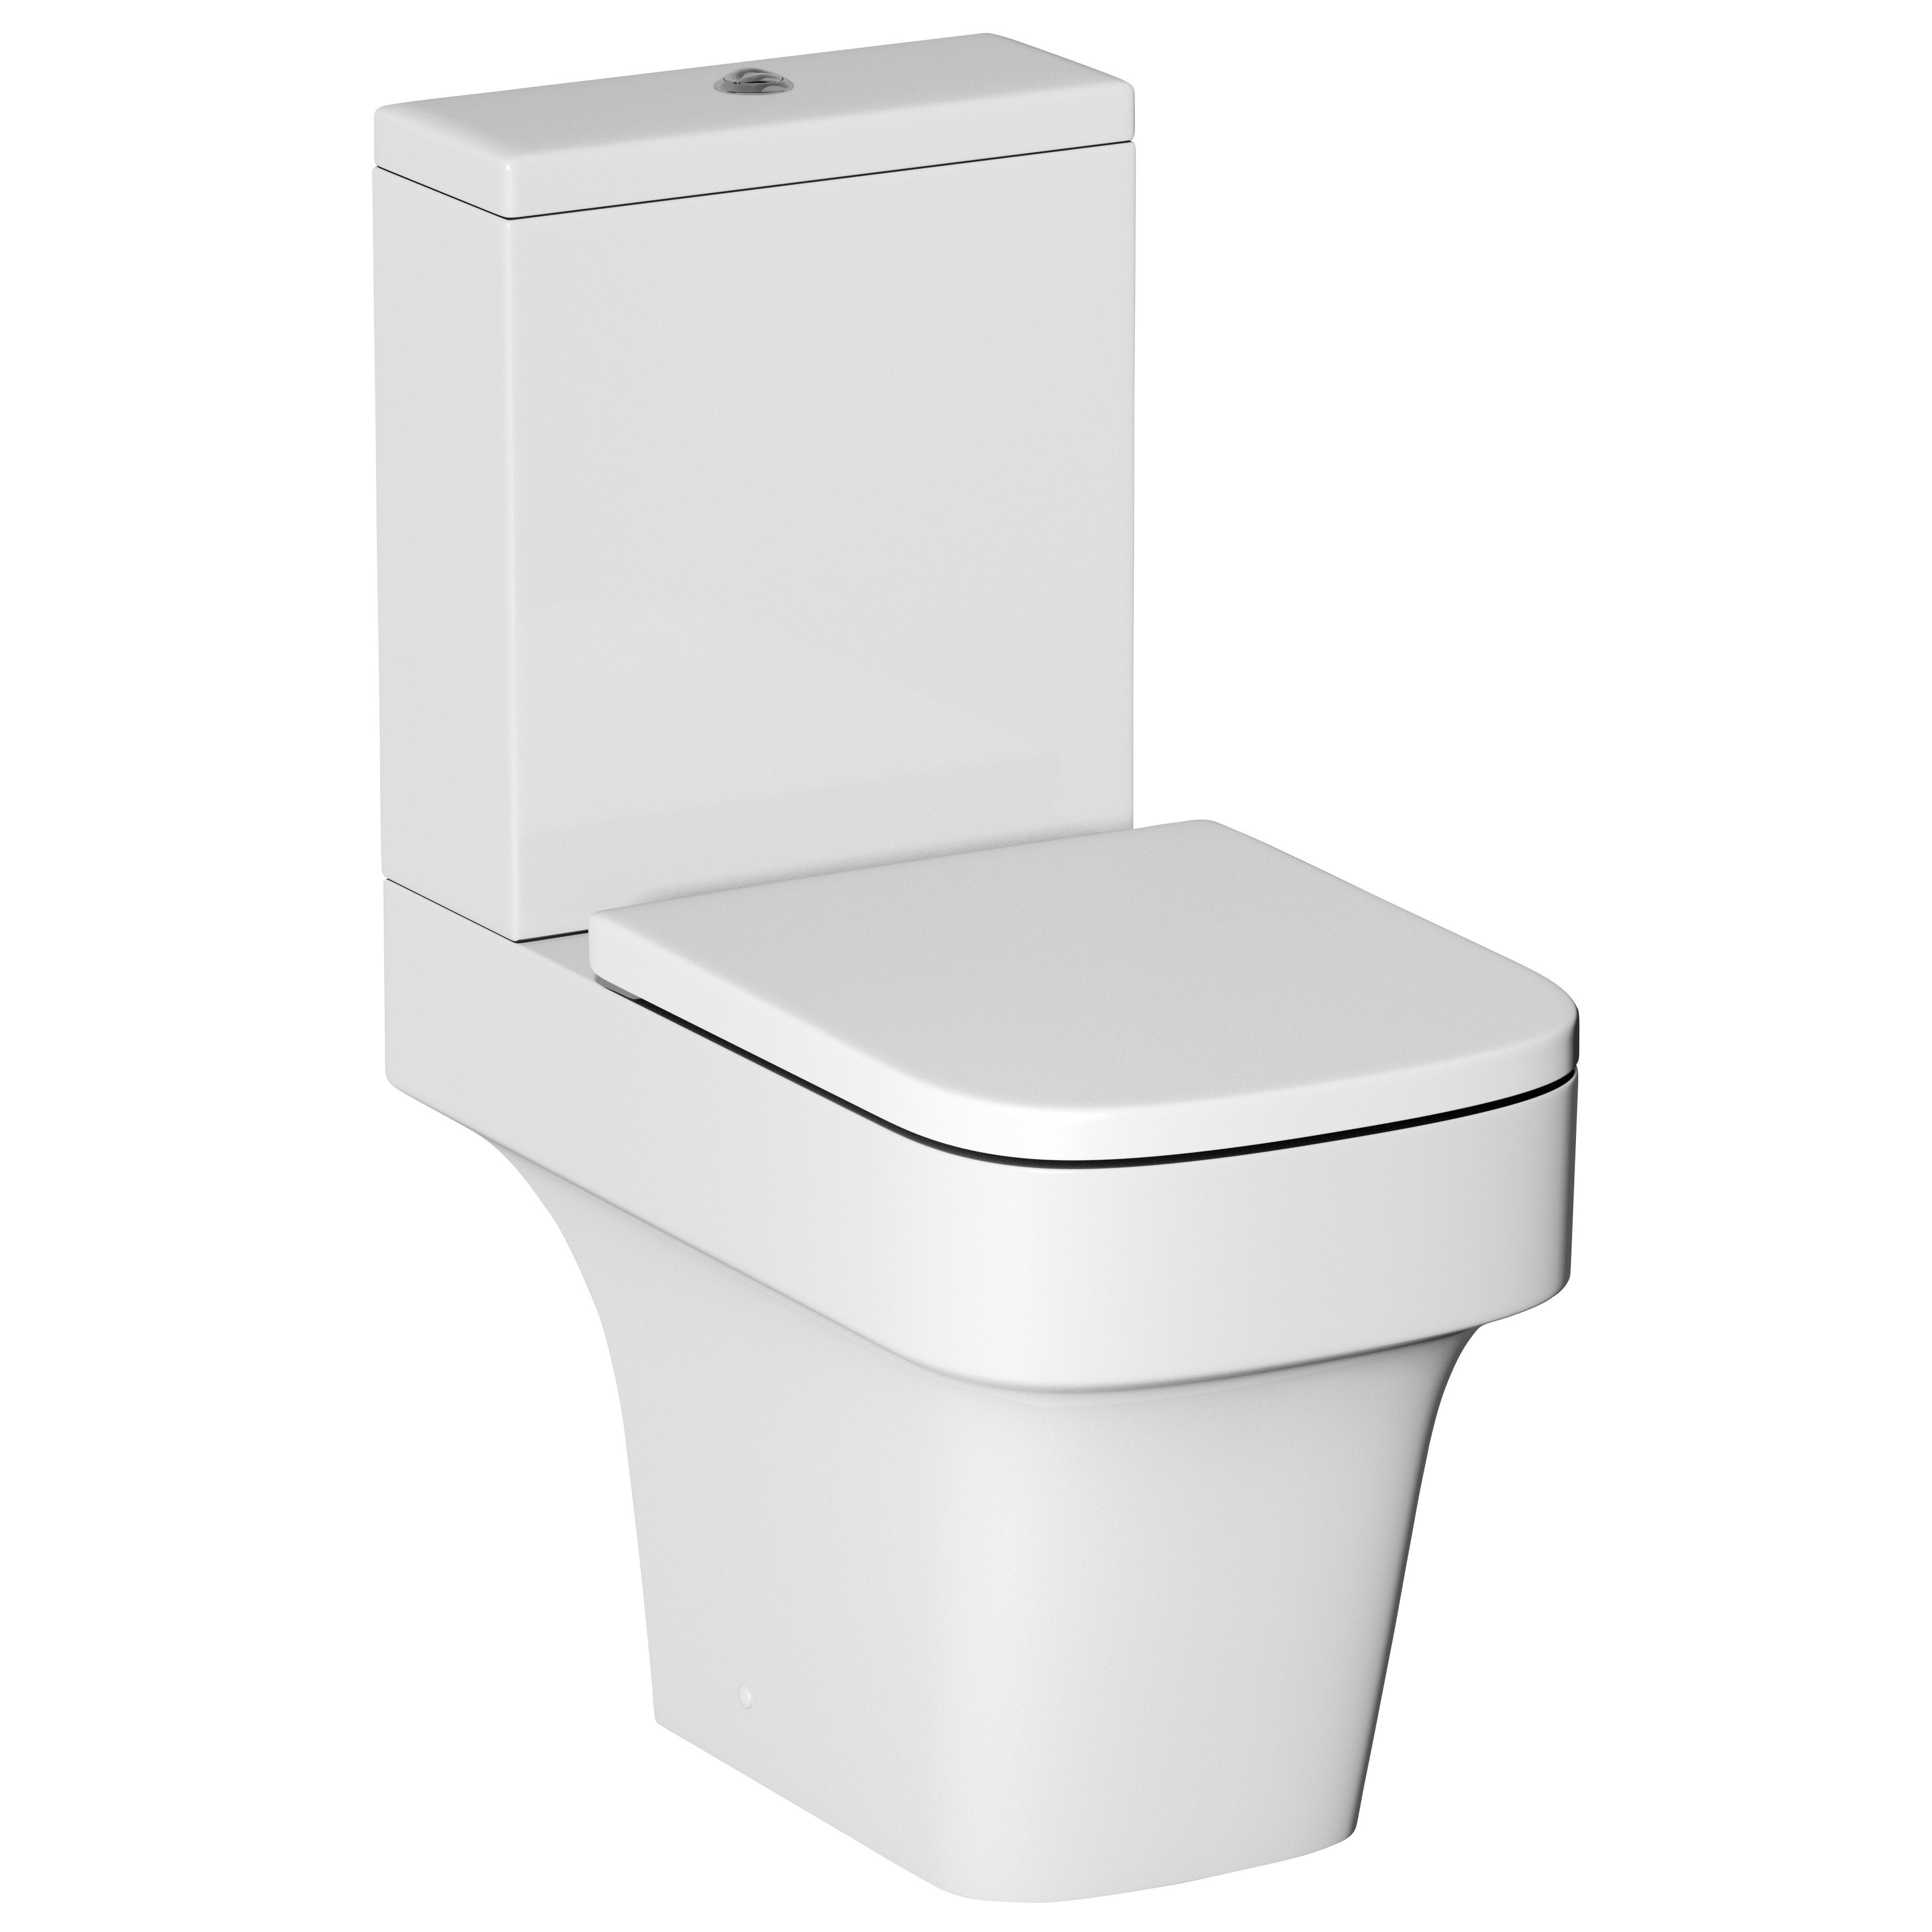 Cooke Lewis Caldaro Contemporary Close Coupled Toilet With Soft Close Seat Departments Tradepoint